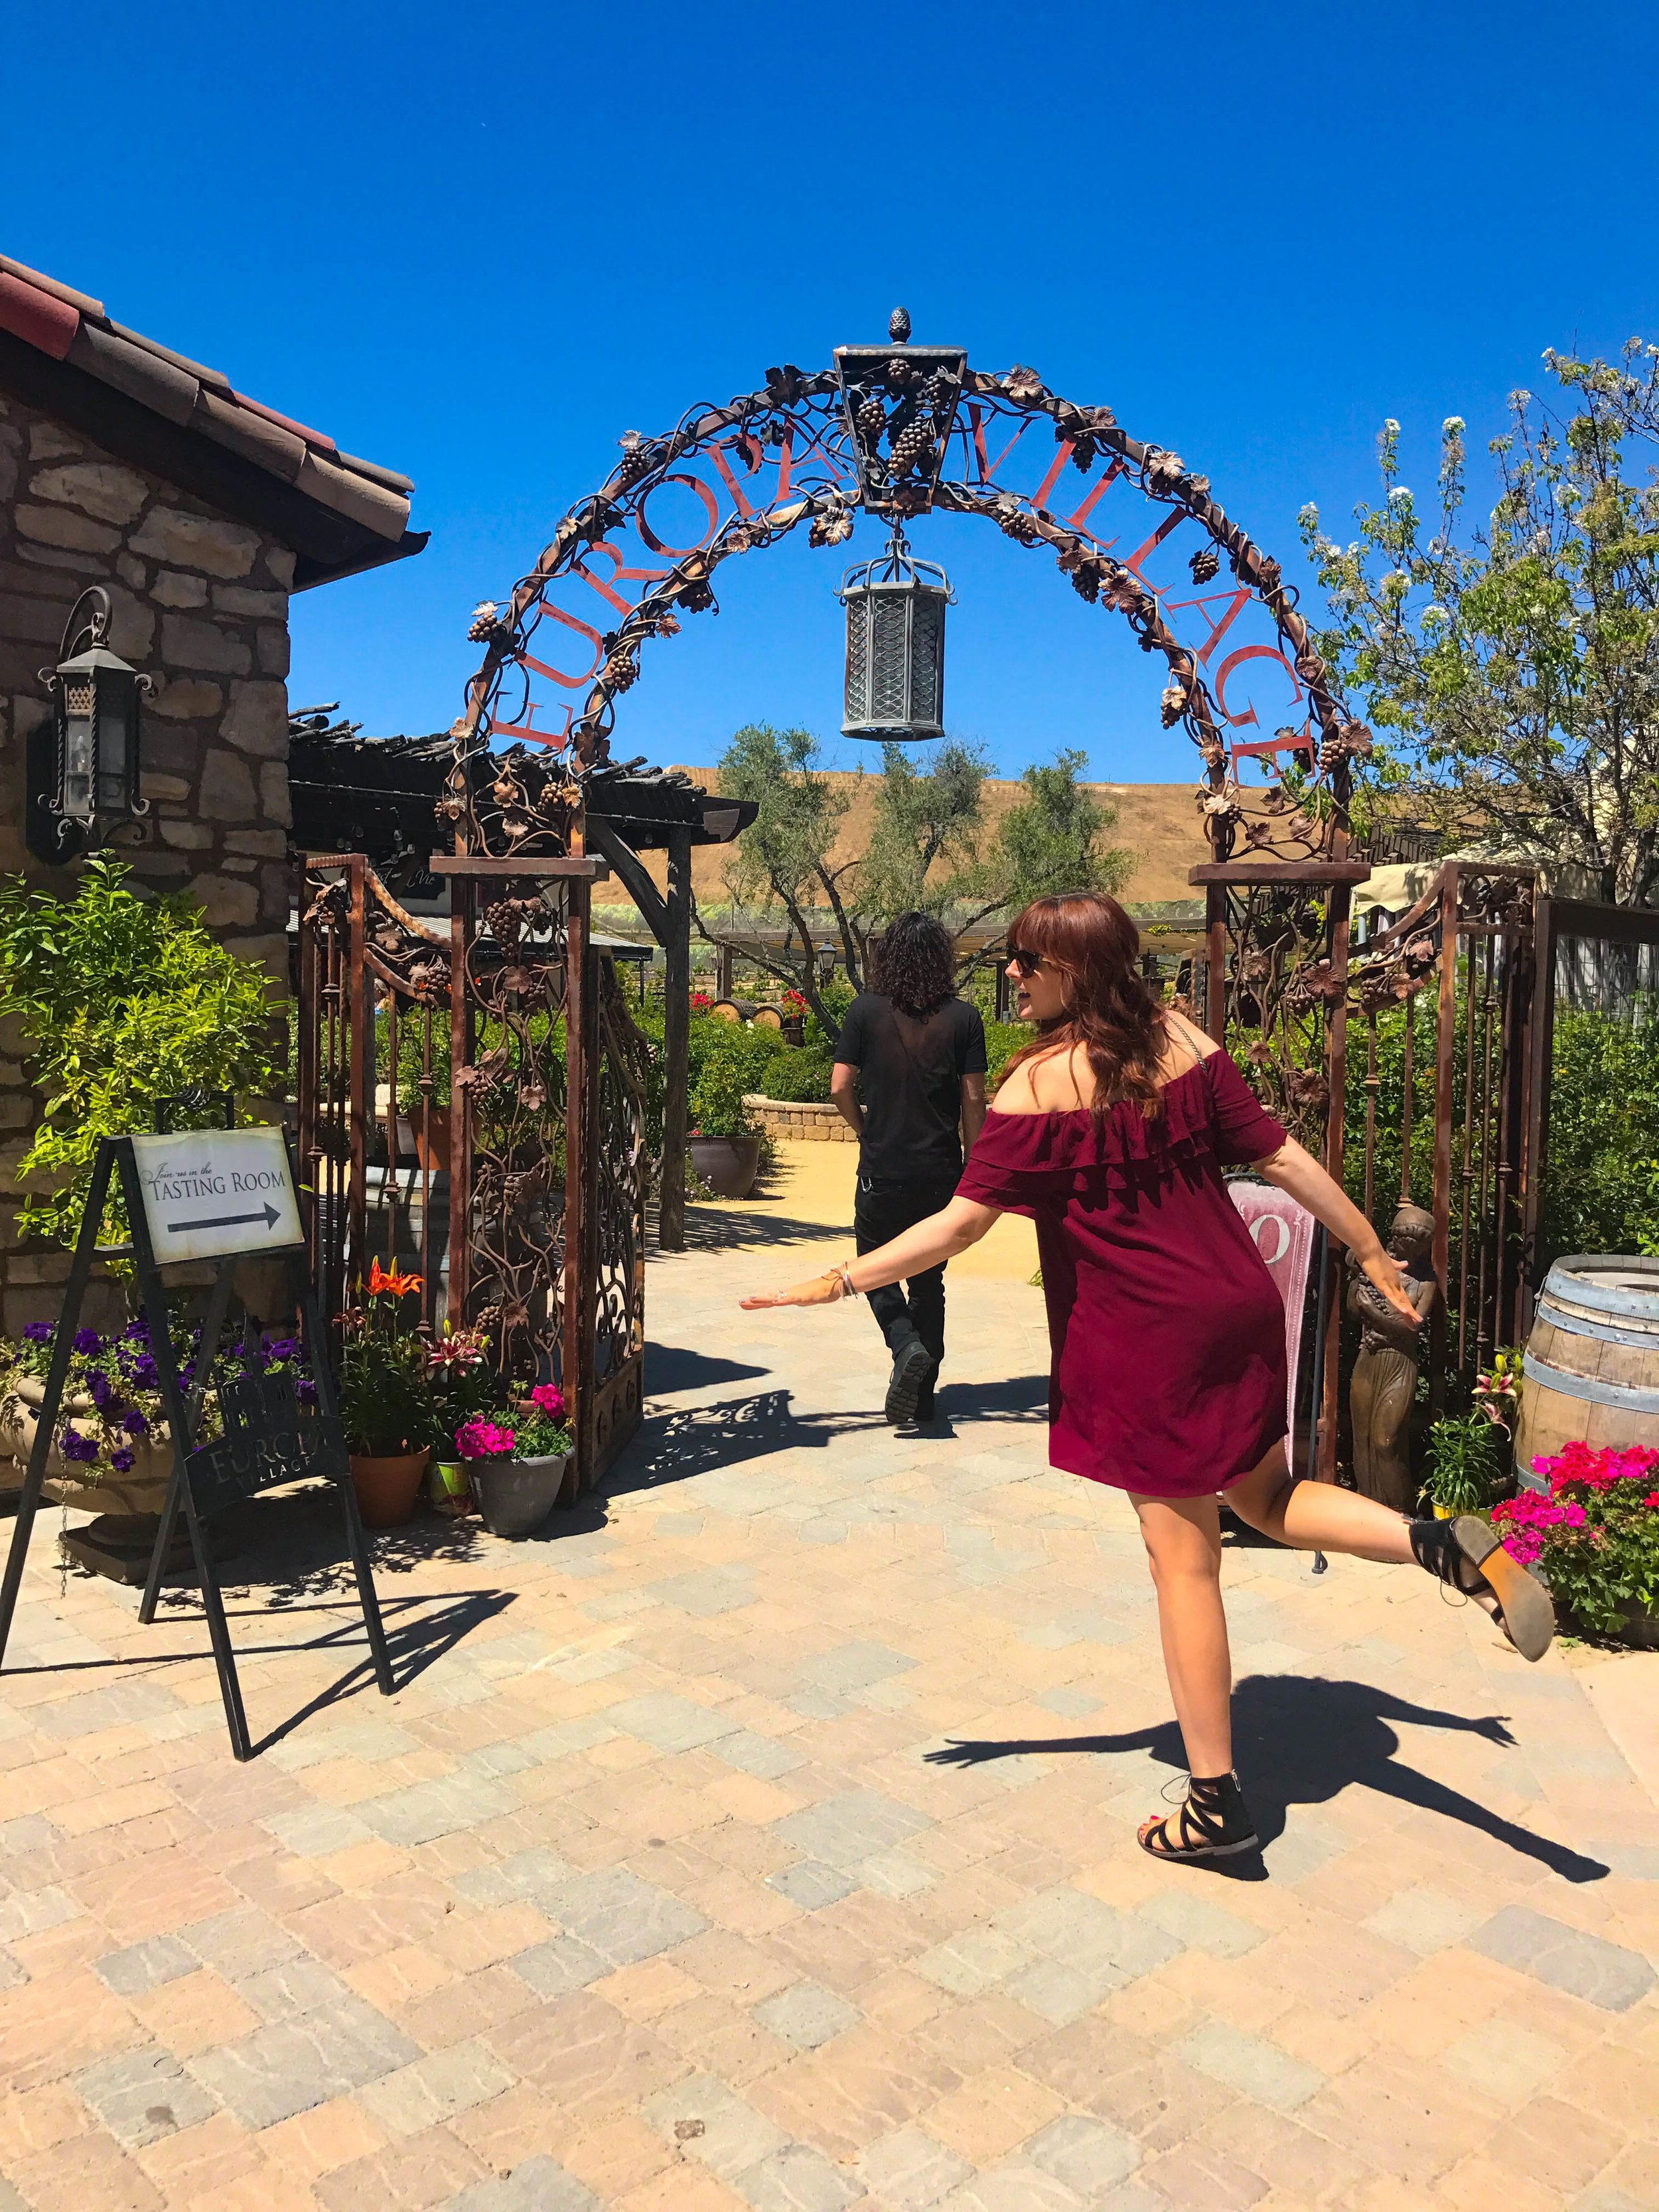 THIS WAY TO EUROPA VILLAGE WINERY!